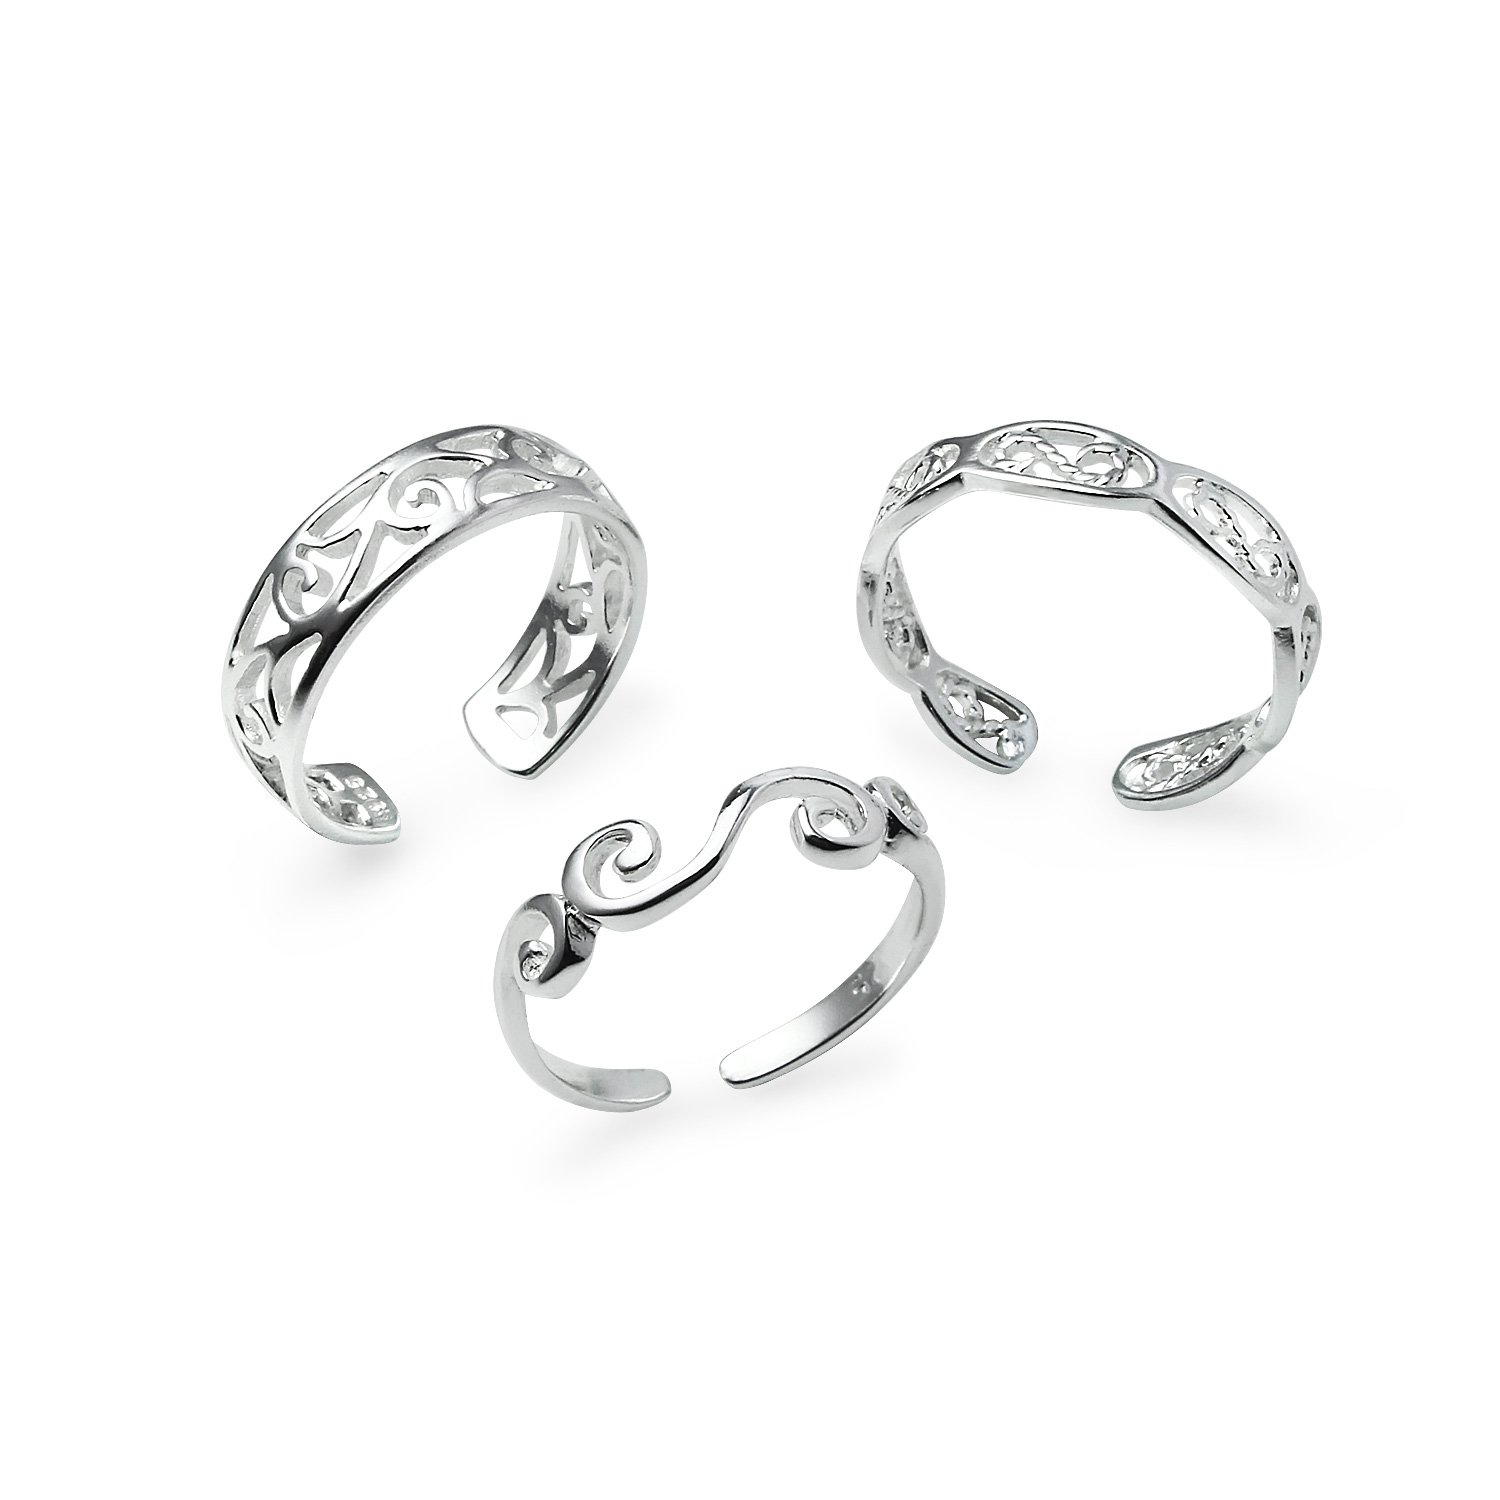 Sterling Silver Assorted Adjustable Toe Rings Jewelry Set of 3 Rings